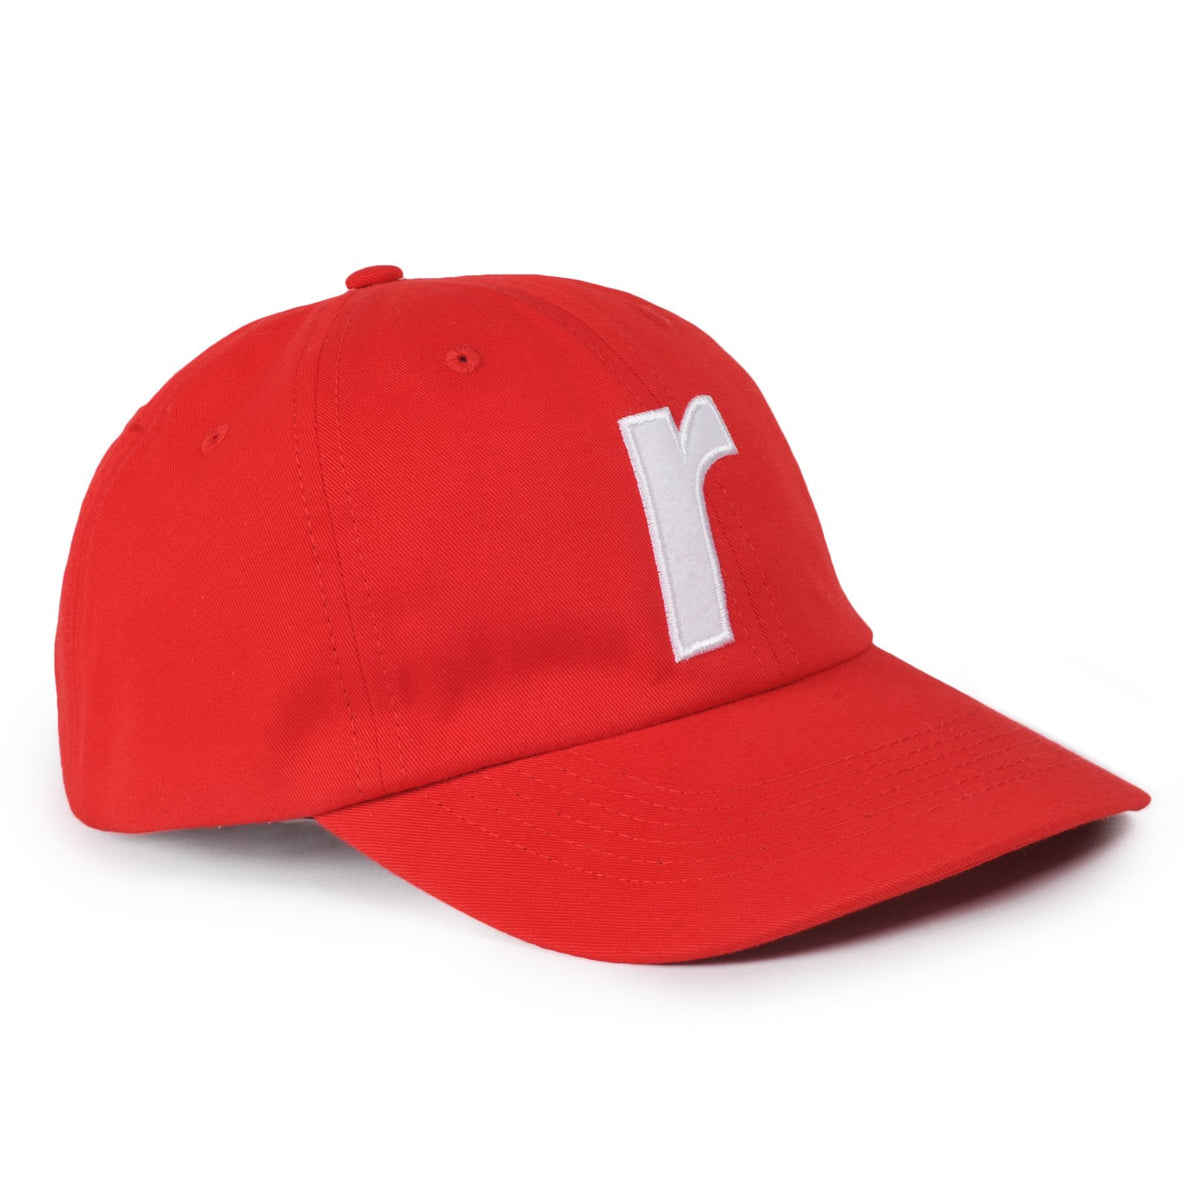 R felt logo cap red - RAVE skateboards